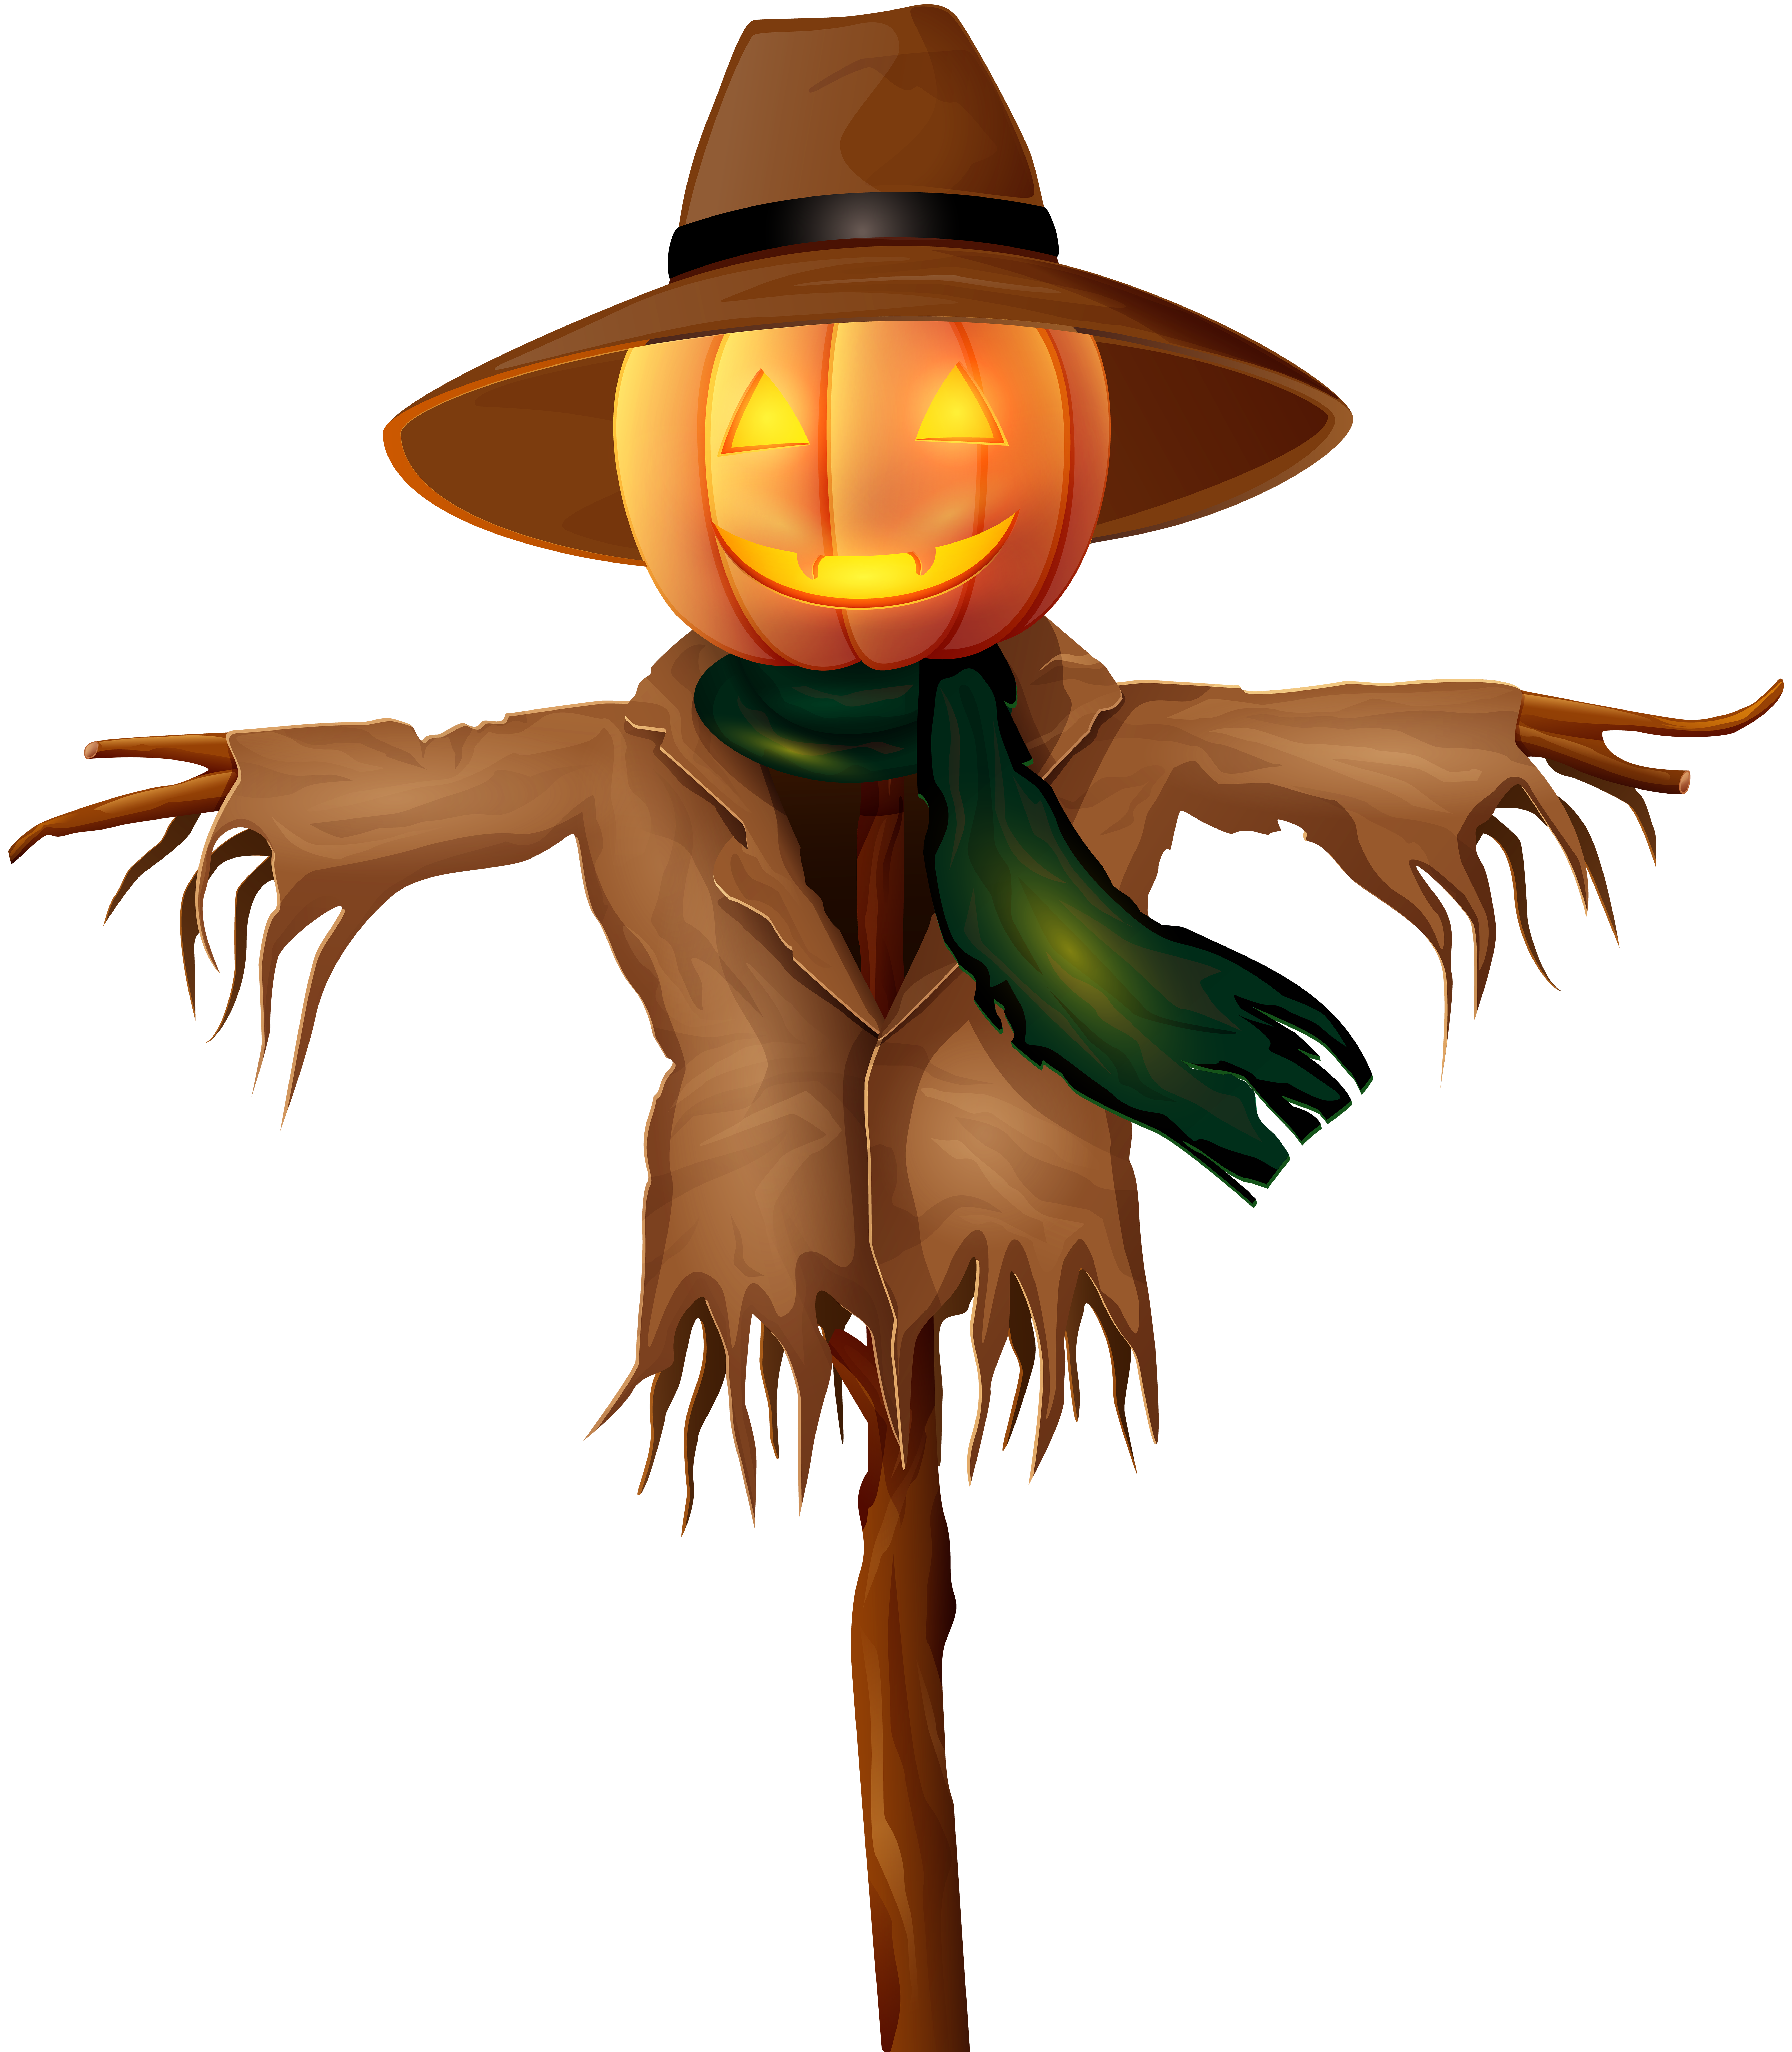 6988x8000 Halloween Scarecrow Png Gold Clip Artu200b Gallery Yopriceville